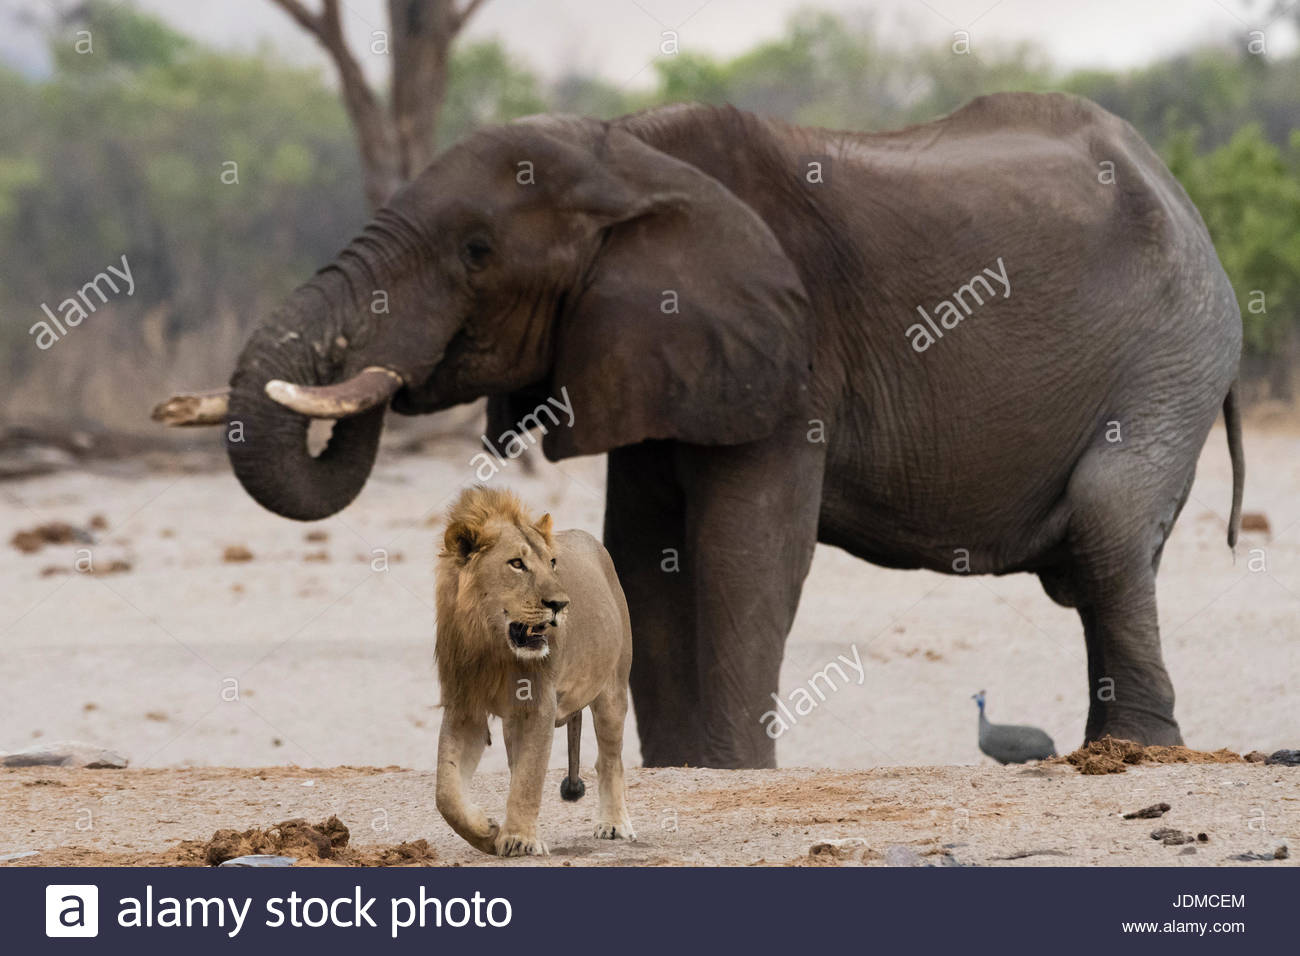 A male lion, Panthera leo, walking away from an African elephant, Loxodonta africana, drinking at waterhole. - Stock Image